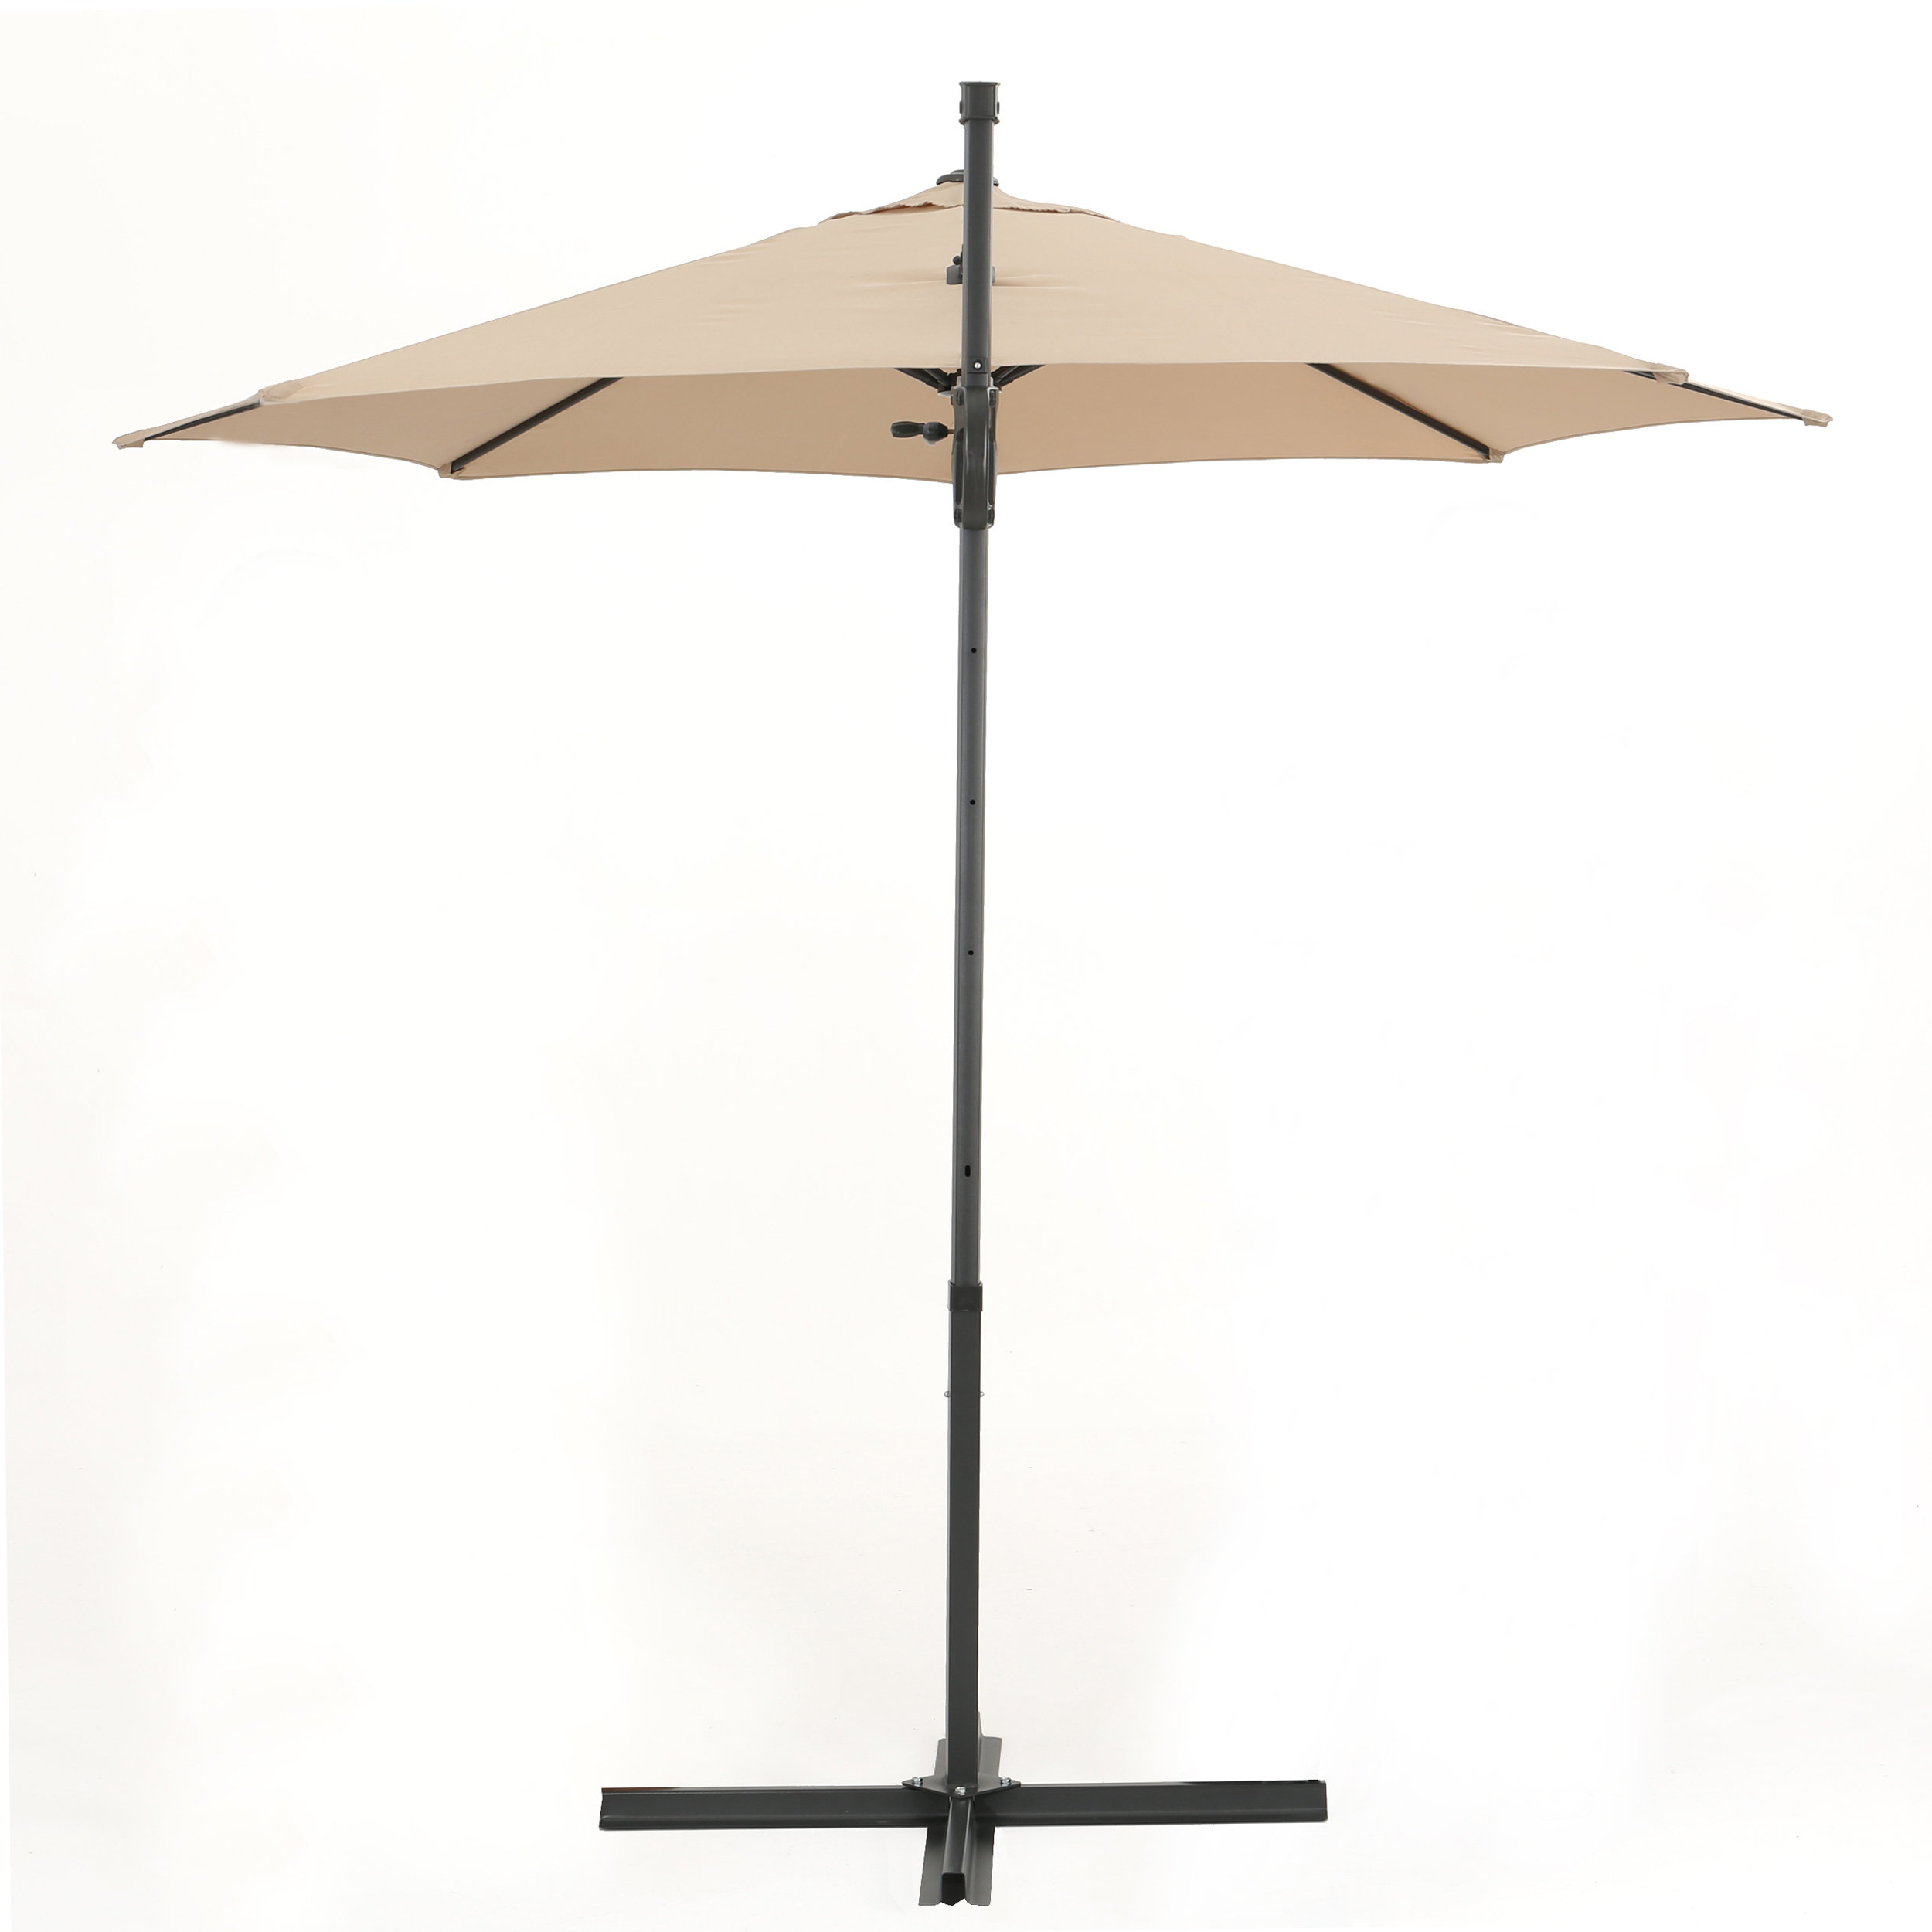 Jaelynn Cantilever Umbrellas Throughout Newest Jaelynn 9.5' Cantilever Umbrella (Gallery 4 of 20)